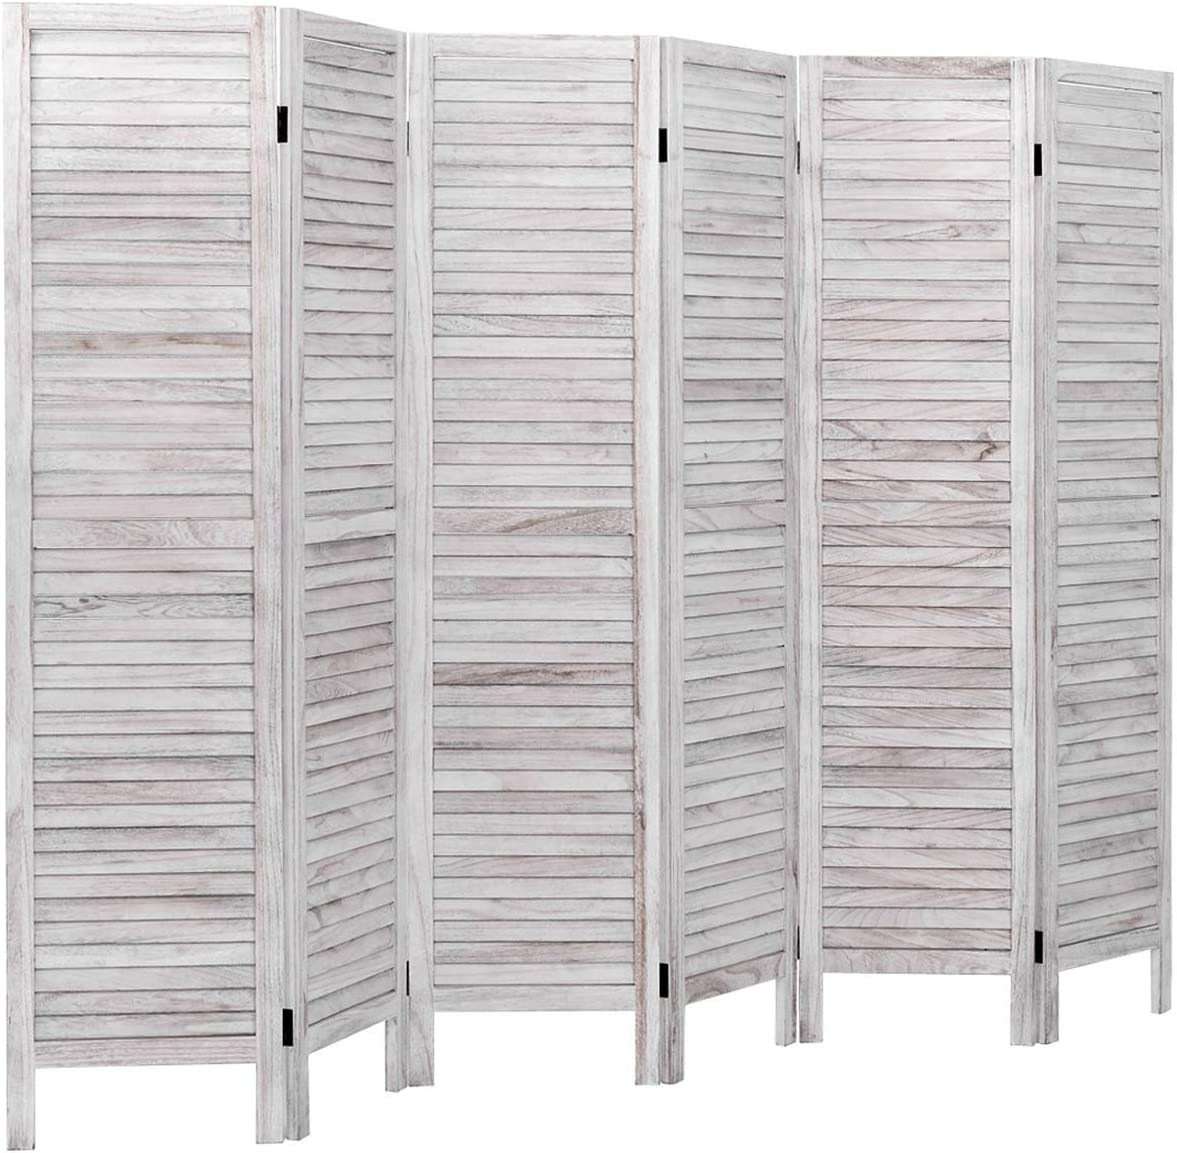 Giantex 6 Panel Wood Room Divider, 5.6 Ft Tall Oriental Folding Freestanding Partition Privicy Room Dividers Screen for Home, Office, Restaurant, Bedroom (White) -